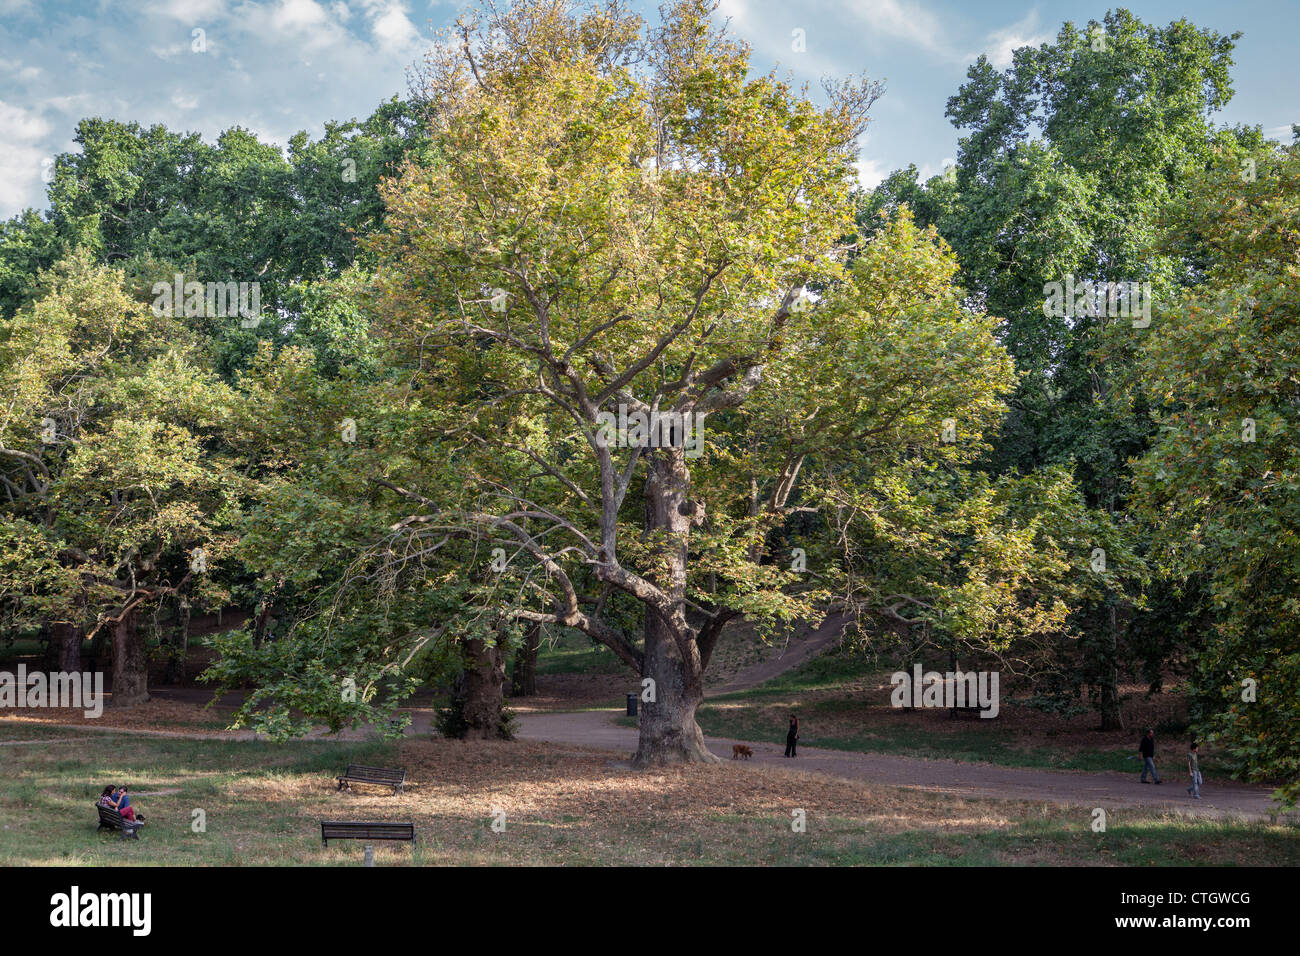 Trees in park, Villa Borghese, Rome, Italy, Europe - Stock Image